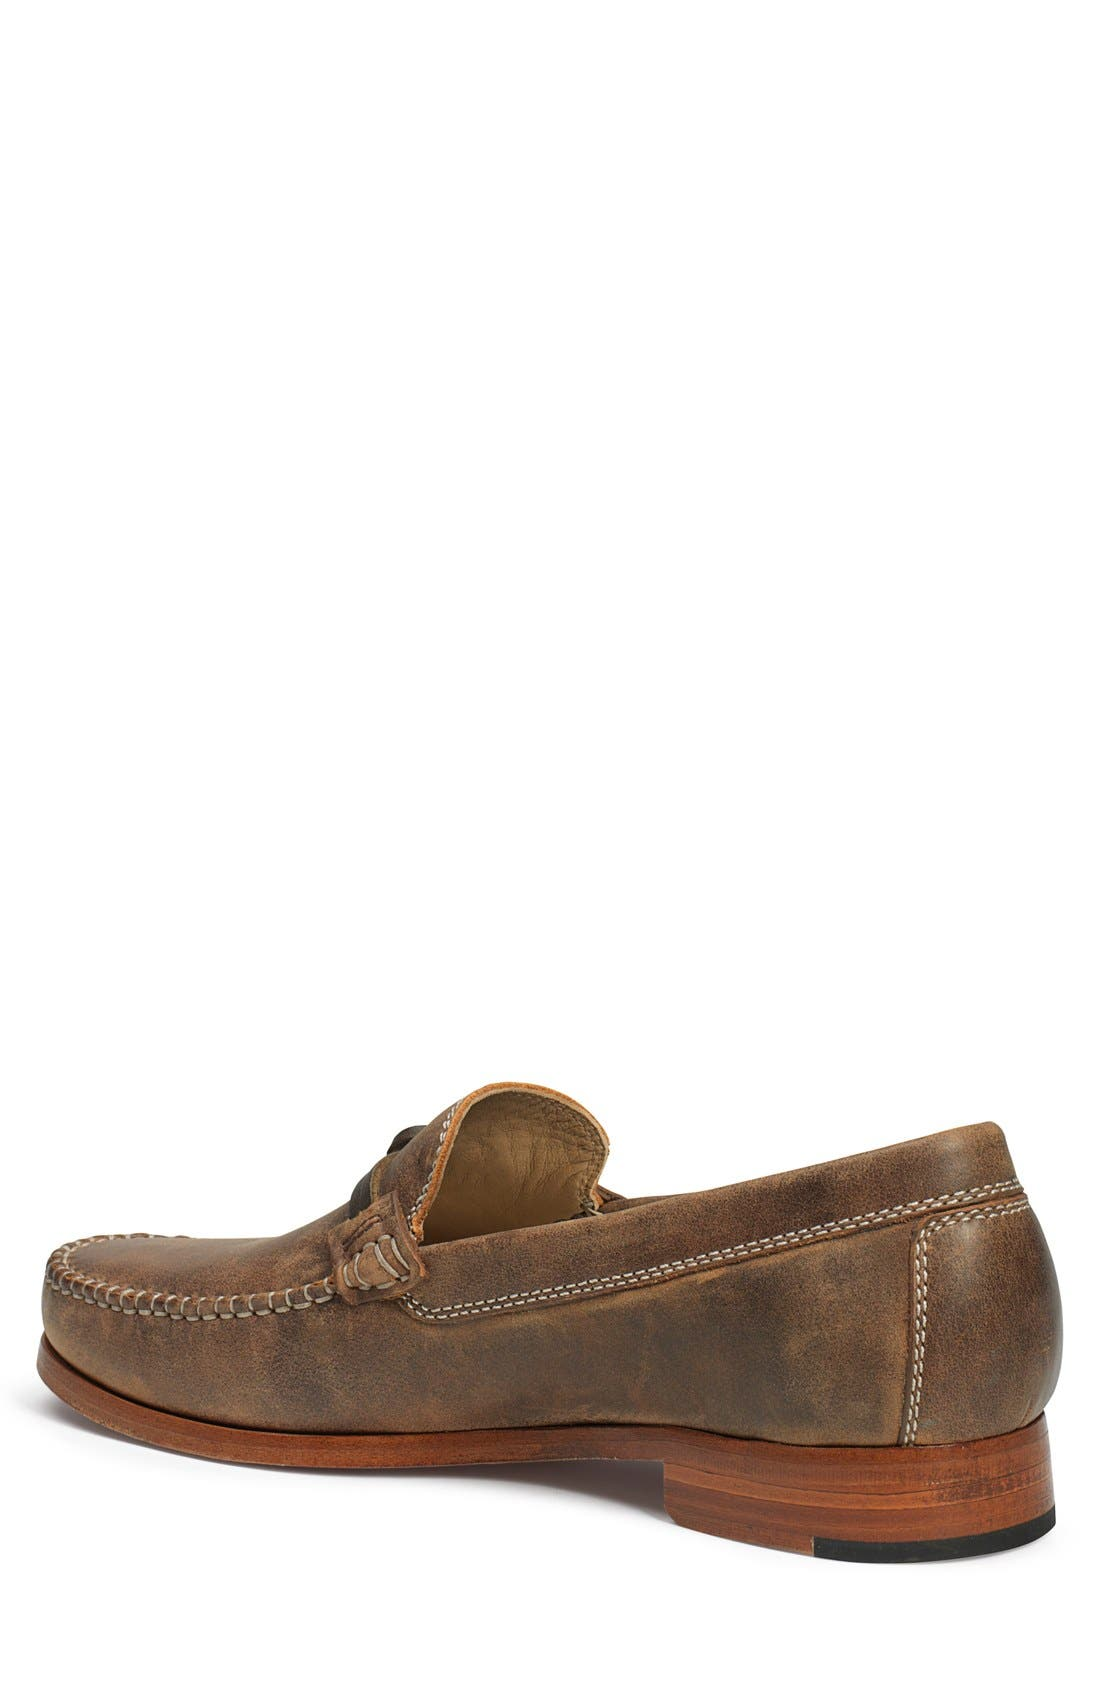 'Seth' Loafer,                             Alternate thumbnail 2, color,                             BROWN